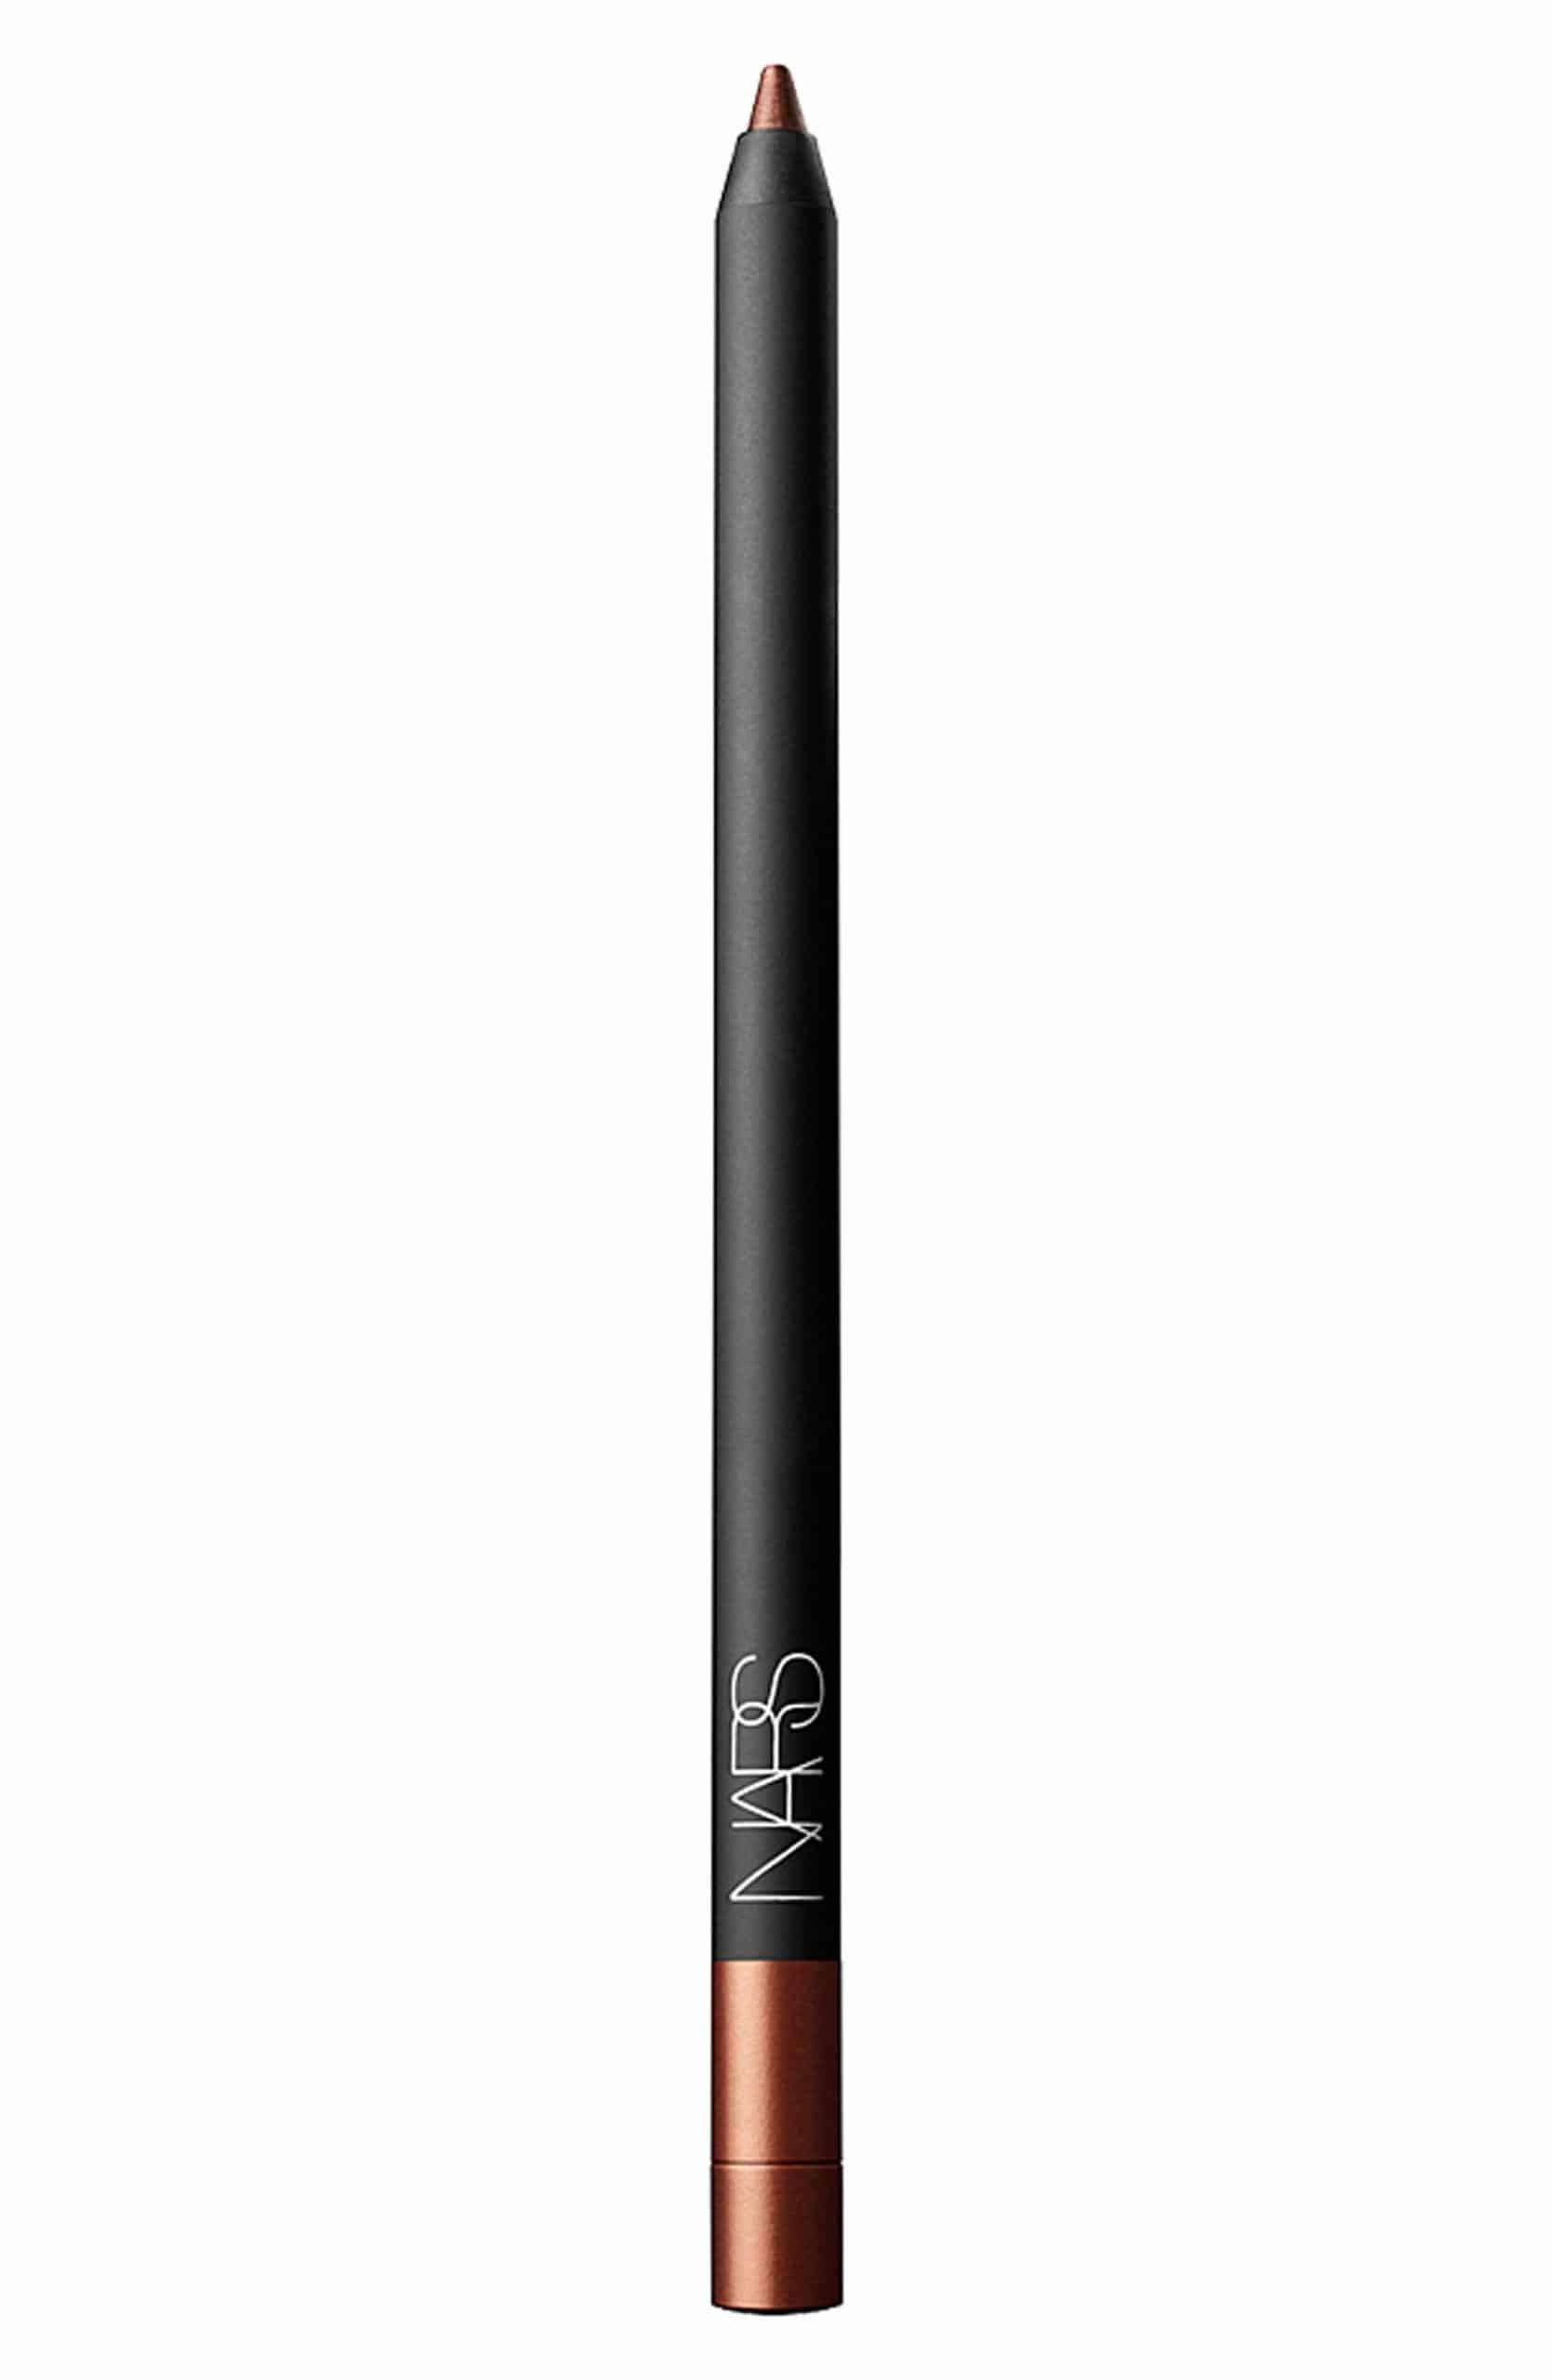 Nars Larger Than Life Long Wear Eyeliner scaled